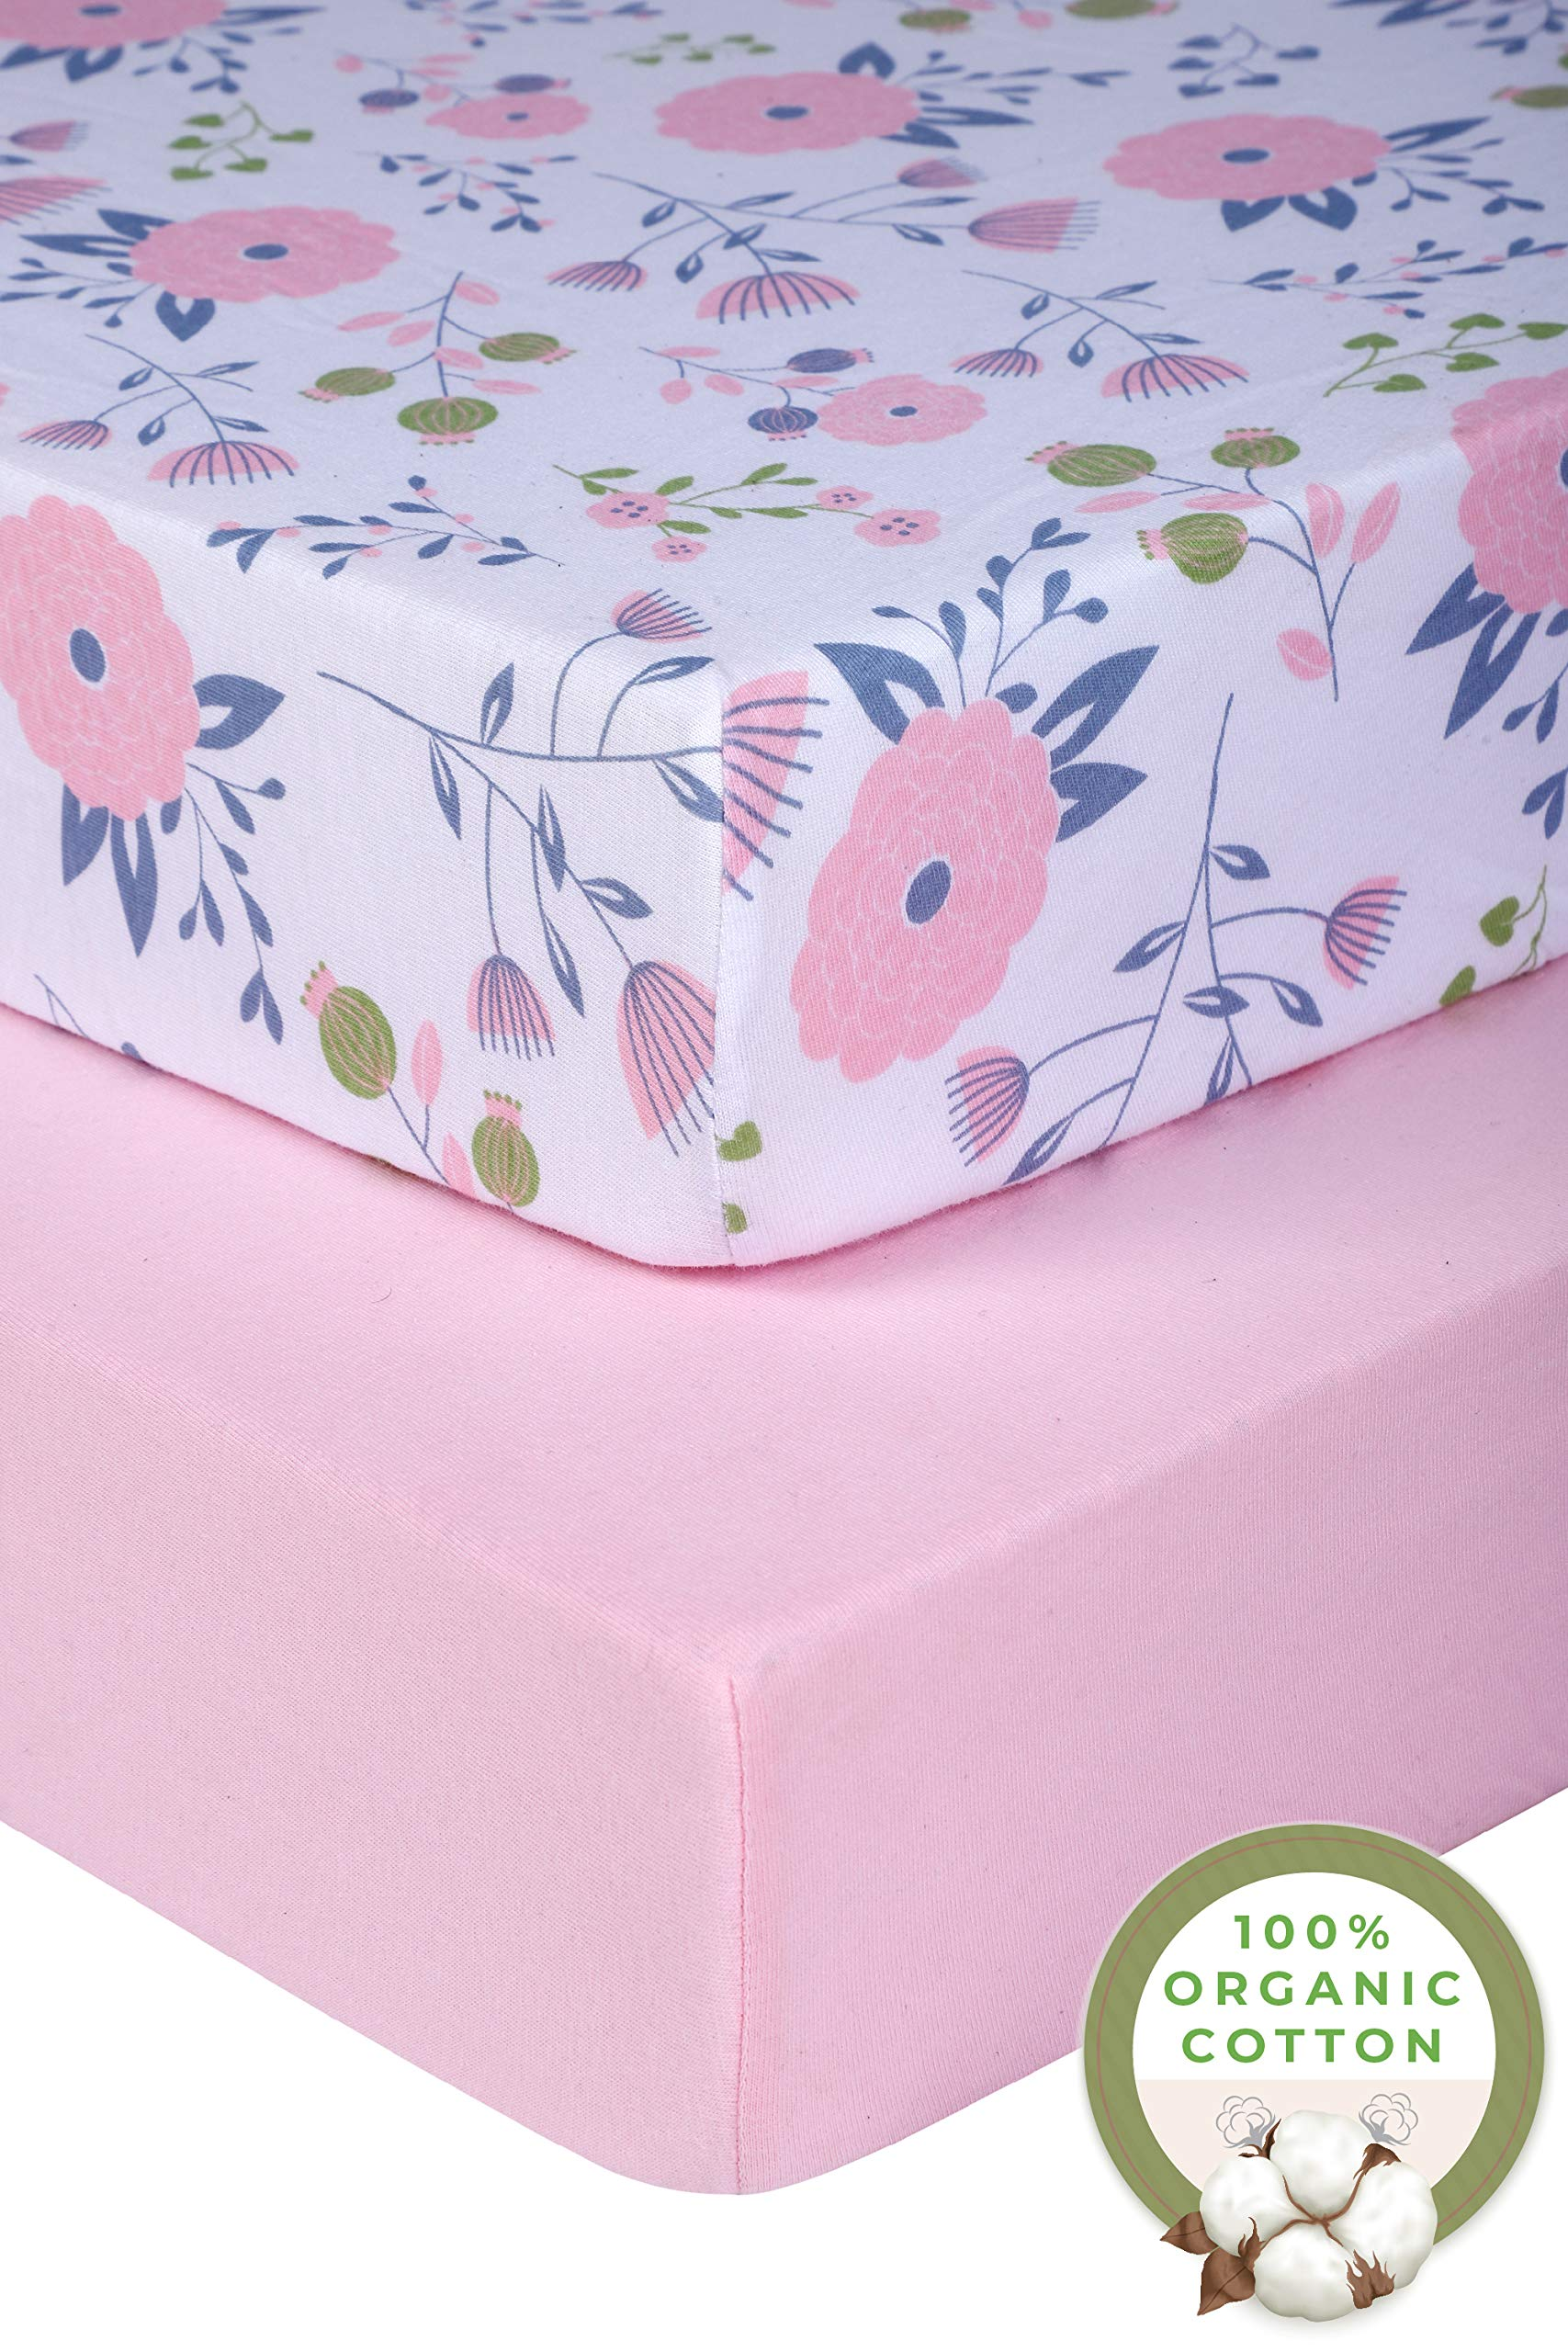 Pickle & Pumpkin Fitted Crib Sheets (2 Pack) in 100% Organic Jersey Cotton | Baby Girl | Toddler Mattress or Standard Crib Mattress Sheets | Pink & Floral Crib Sheet Set | Toddler Bedding (28''x 52'') by Pickle & Pumpkin